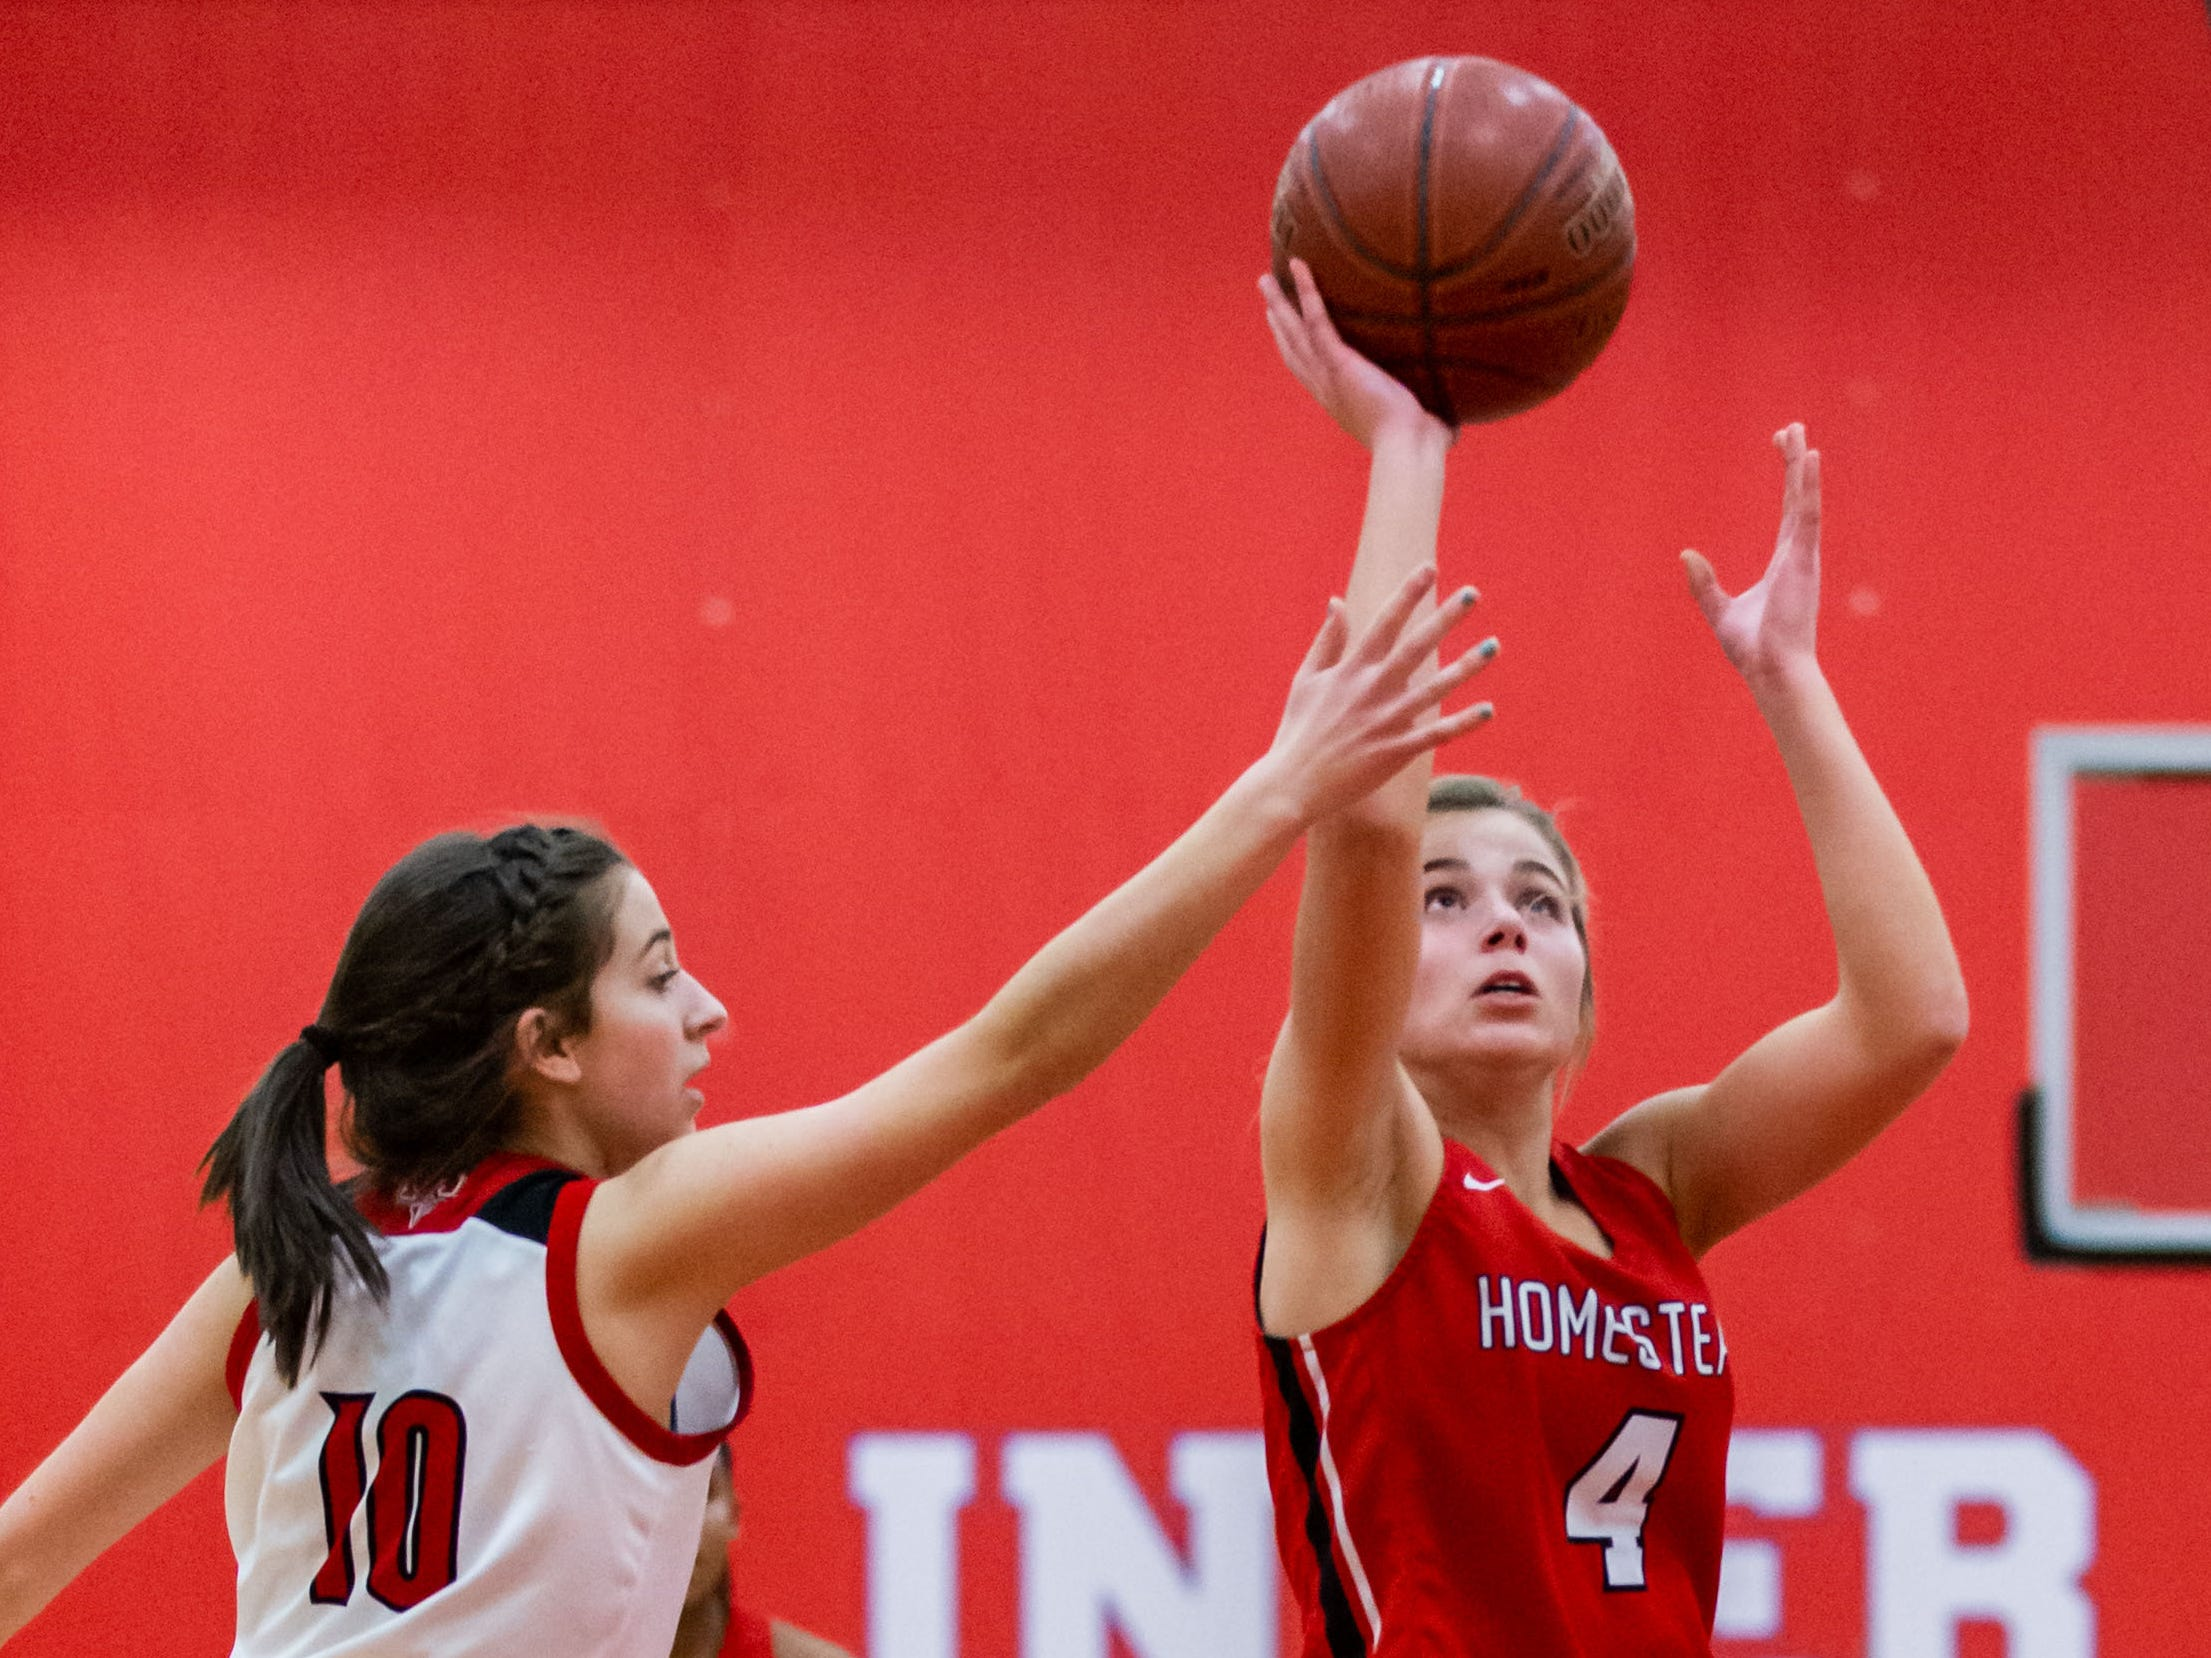 Homestead's Chloe Sileno (4) drives past Slinger's Maddie Rothenhoefer (10) for a layup during the game at Slinger on Friday, Jan. 11, 2019.